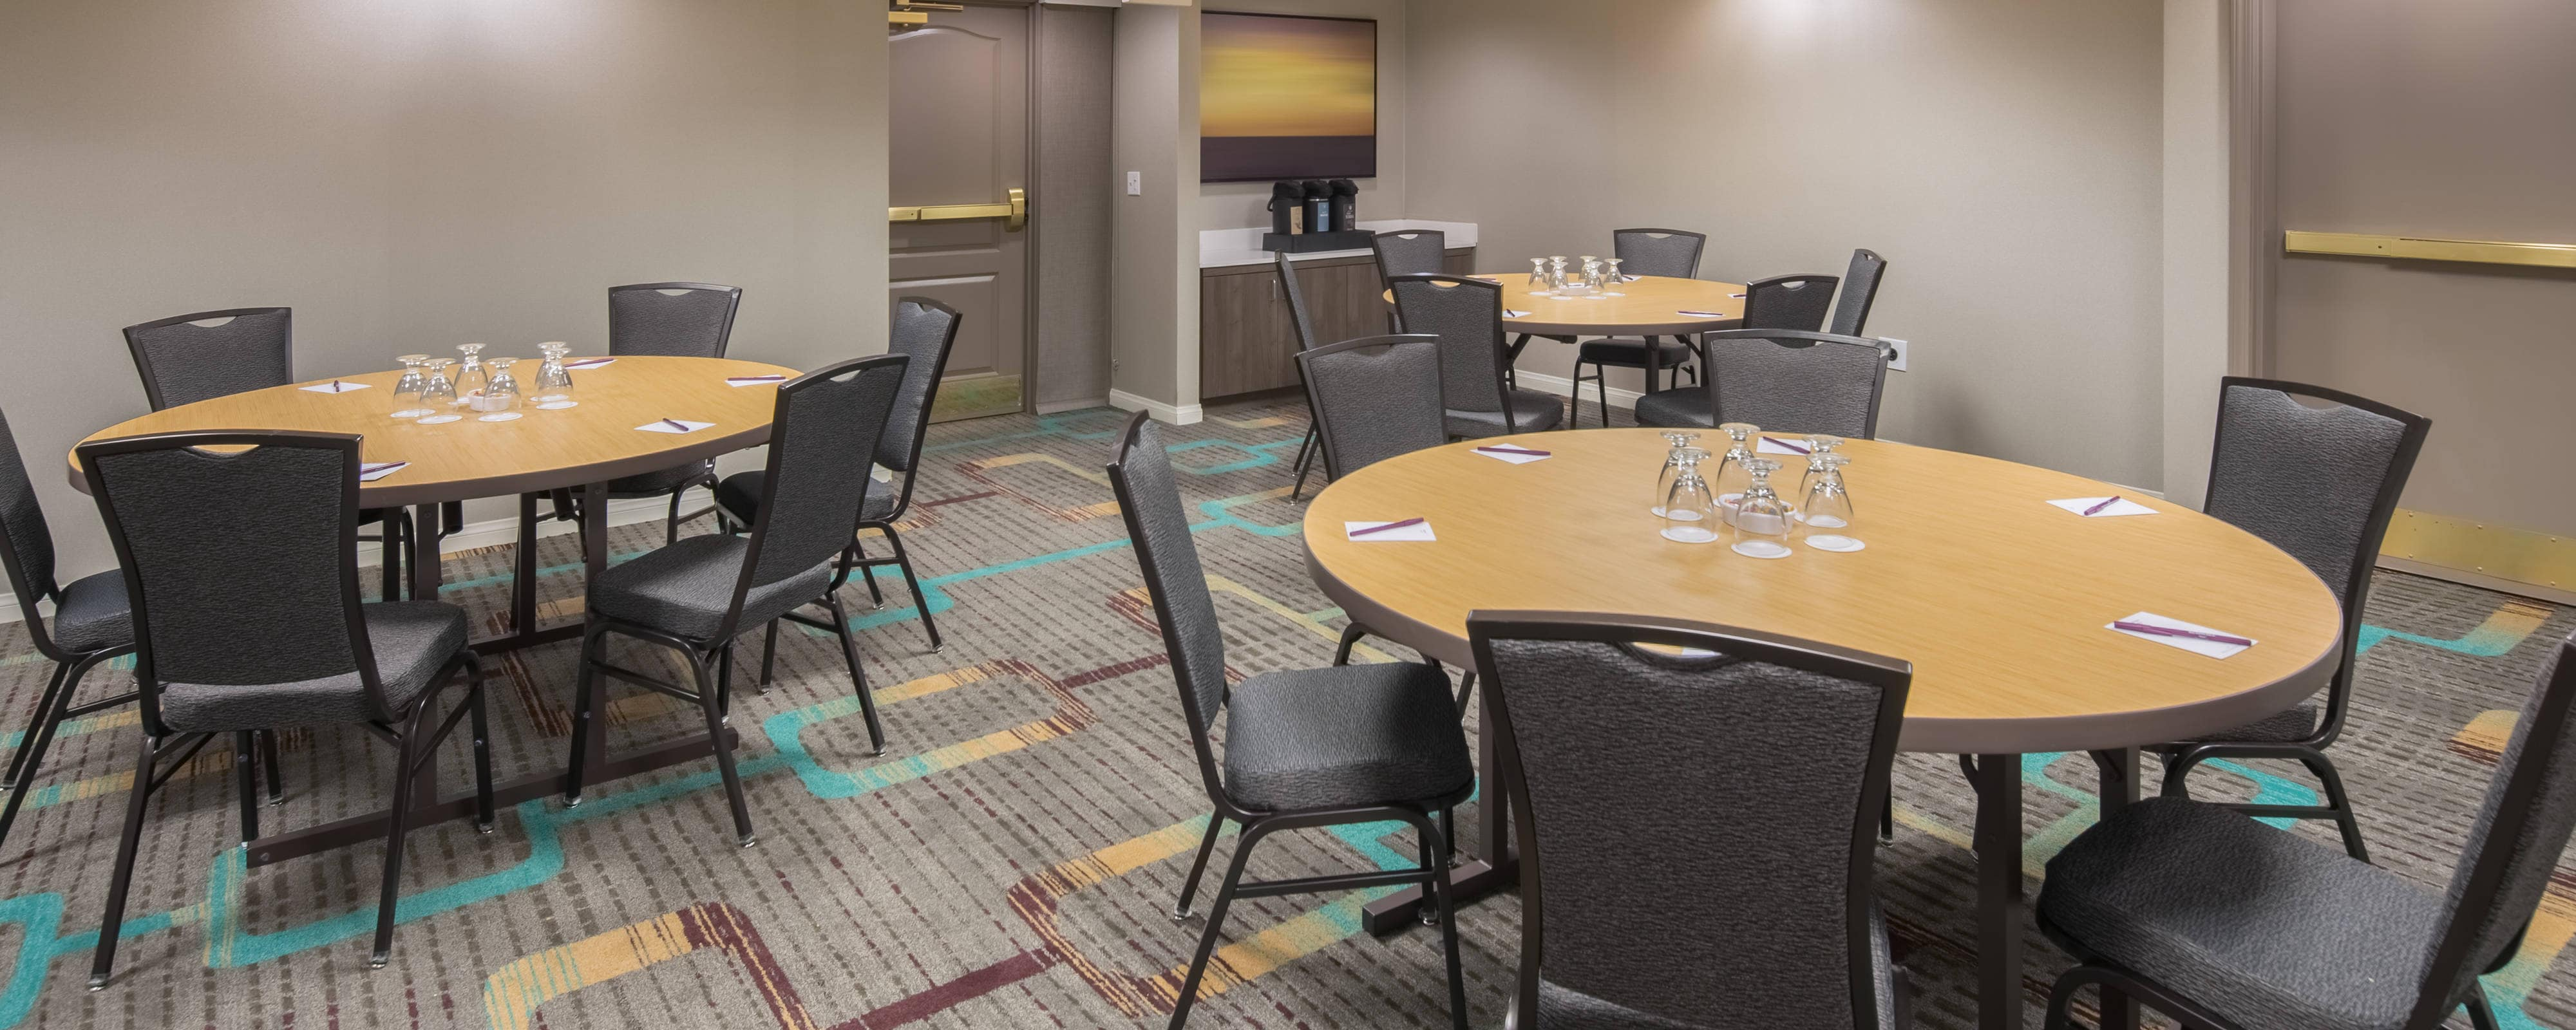 Portland Airport Meeting Rooms